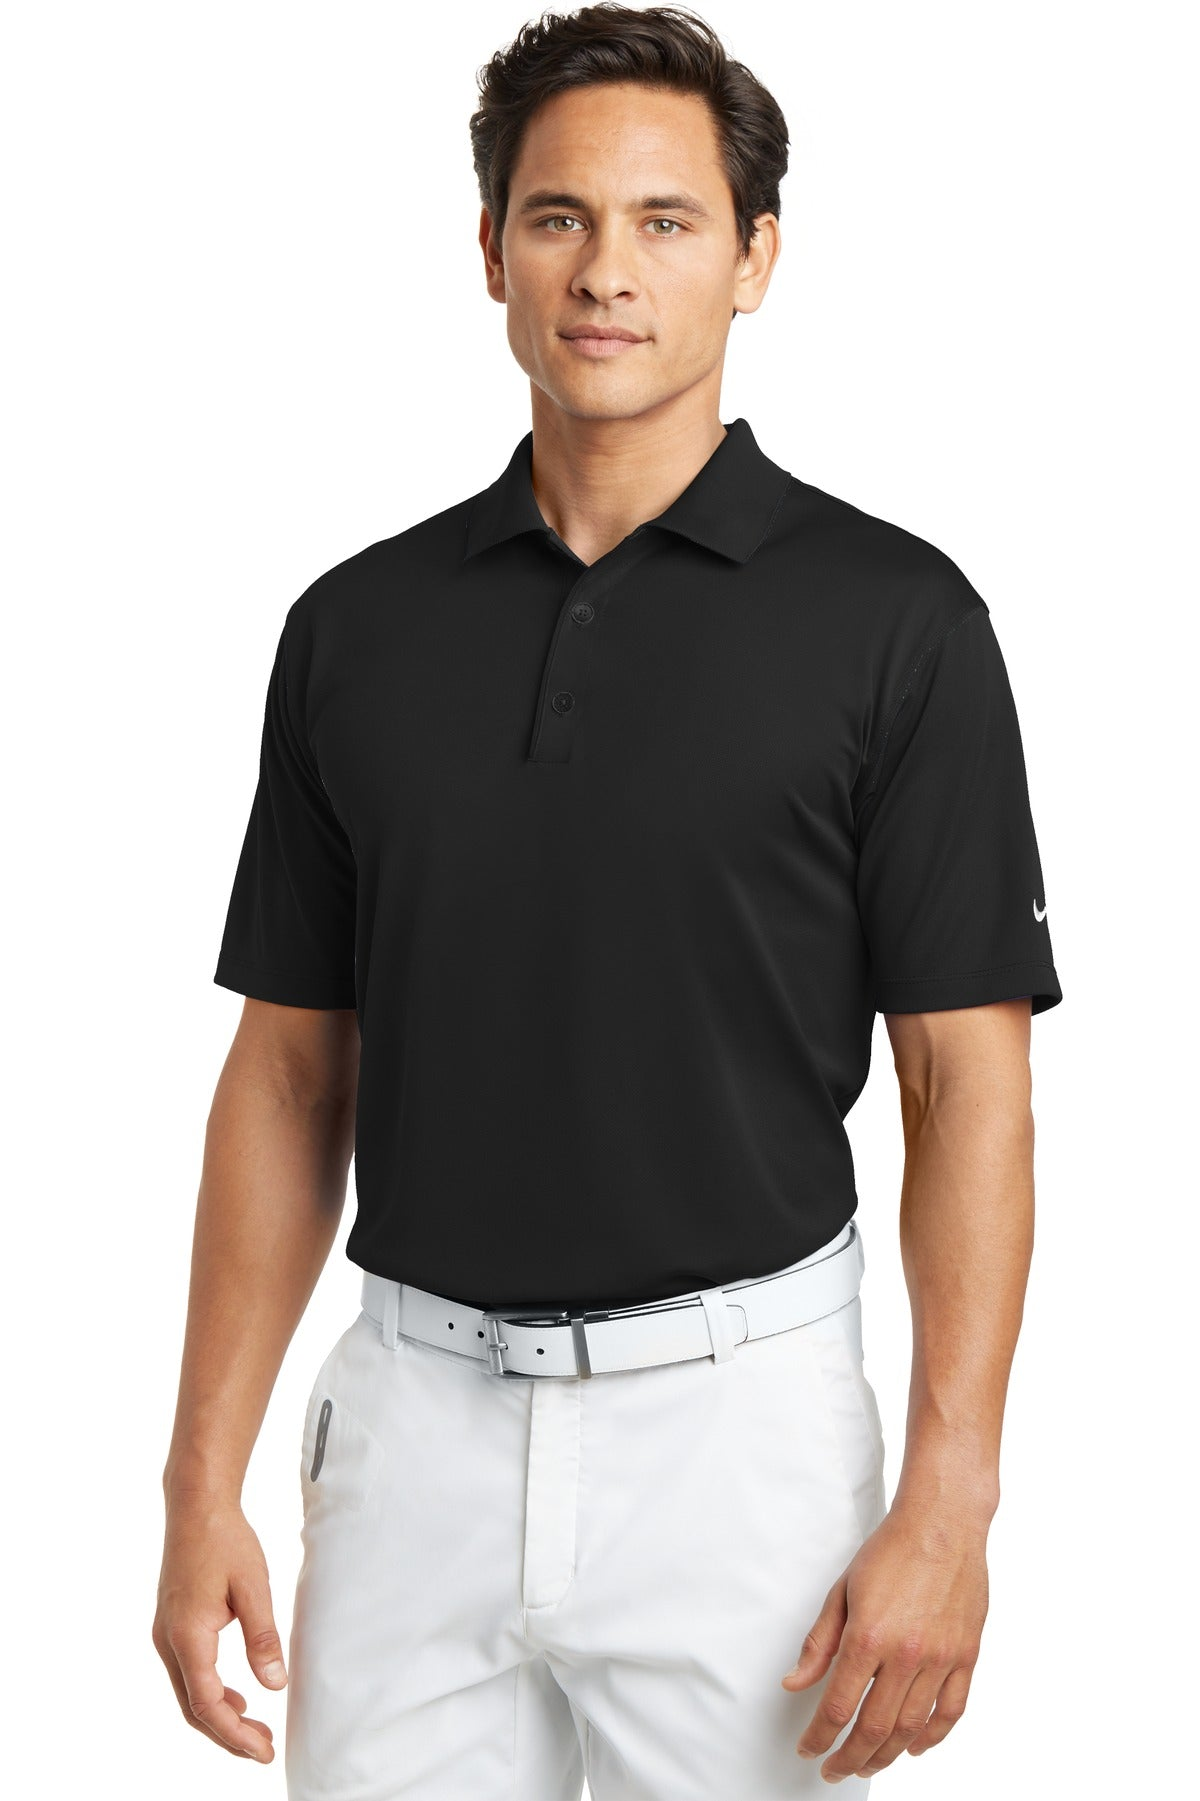 Black Nike Tech Basic Dri-FIT Polo.